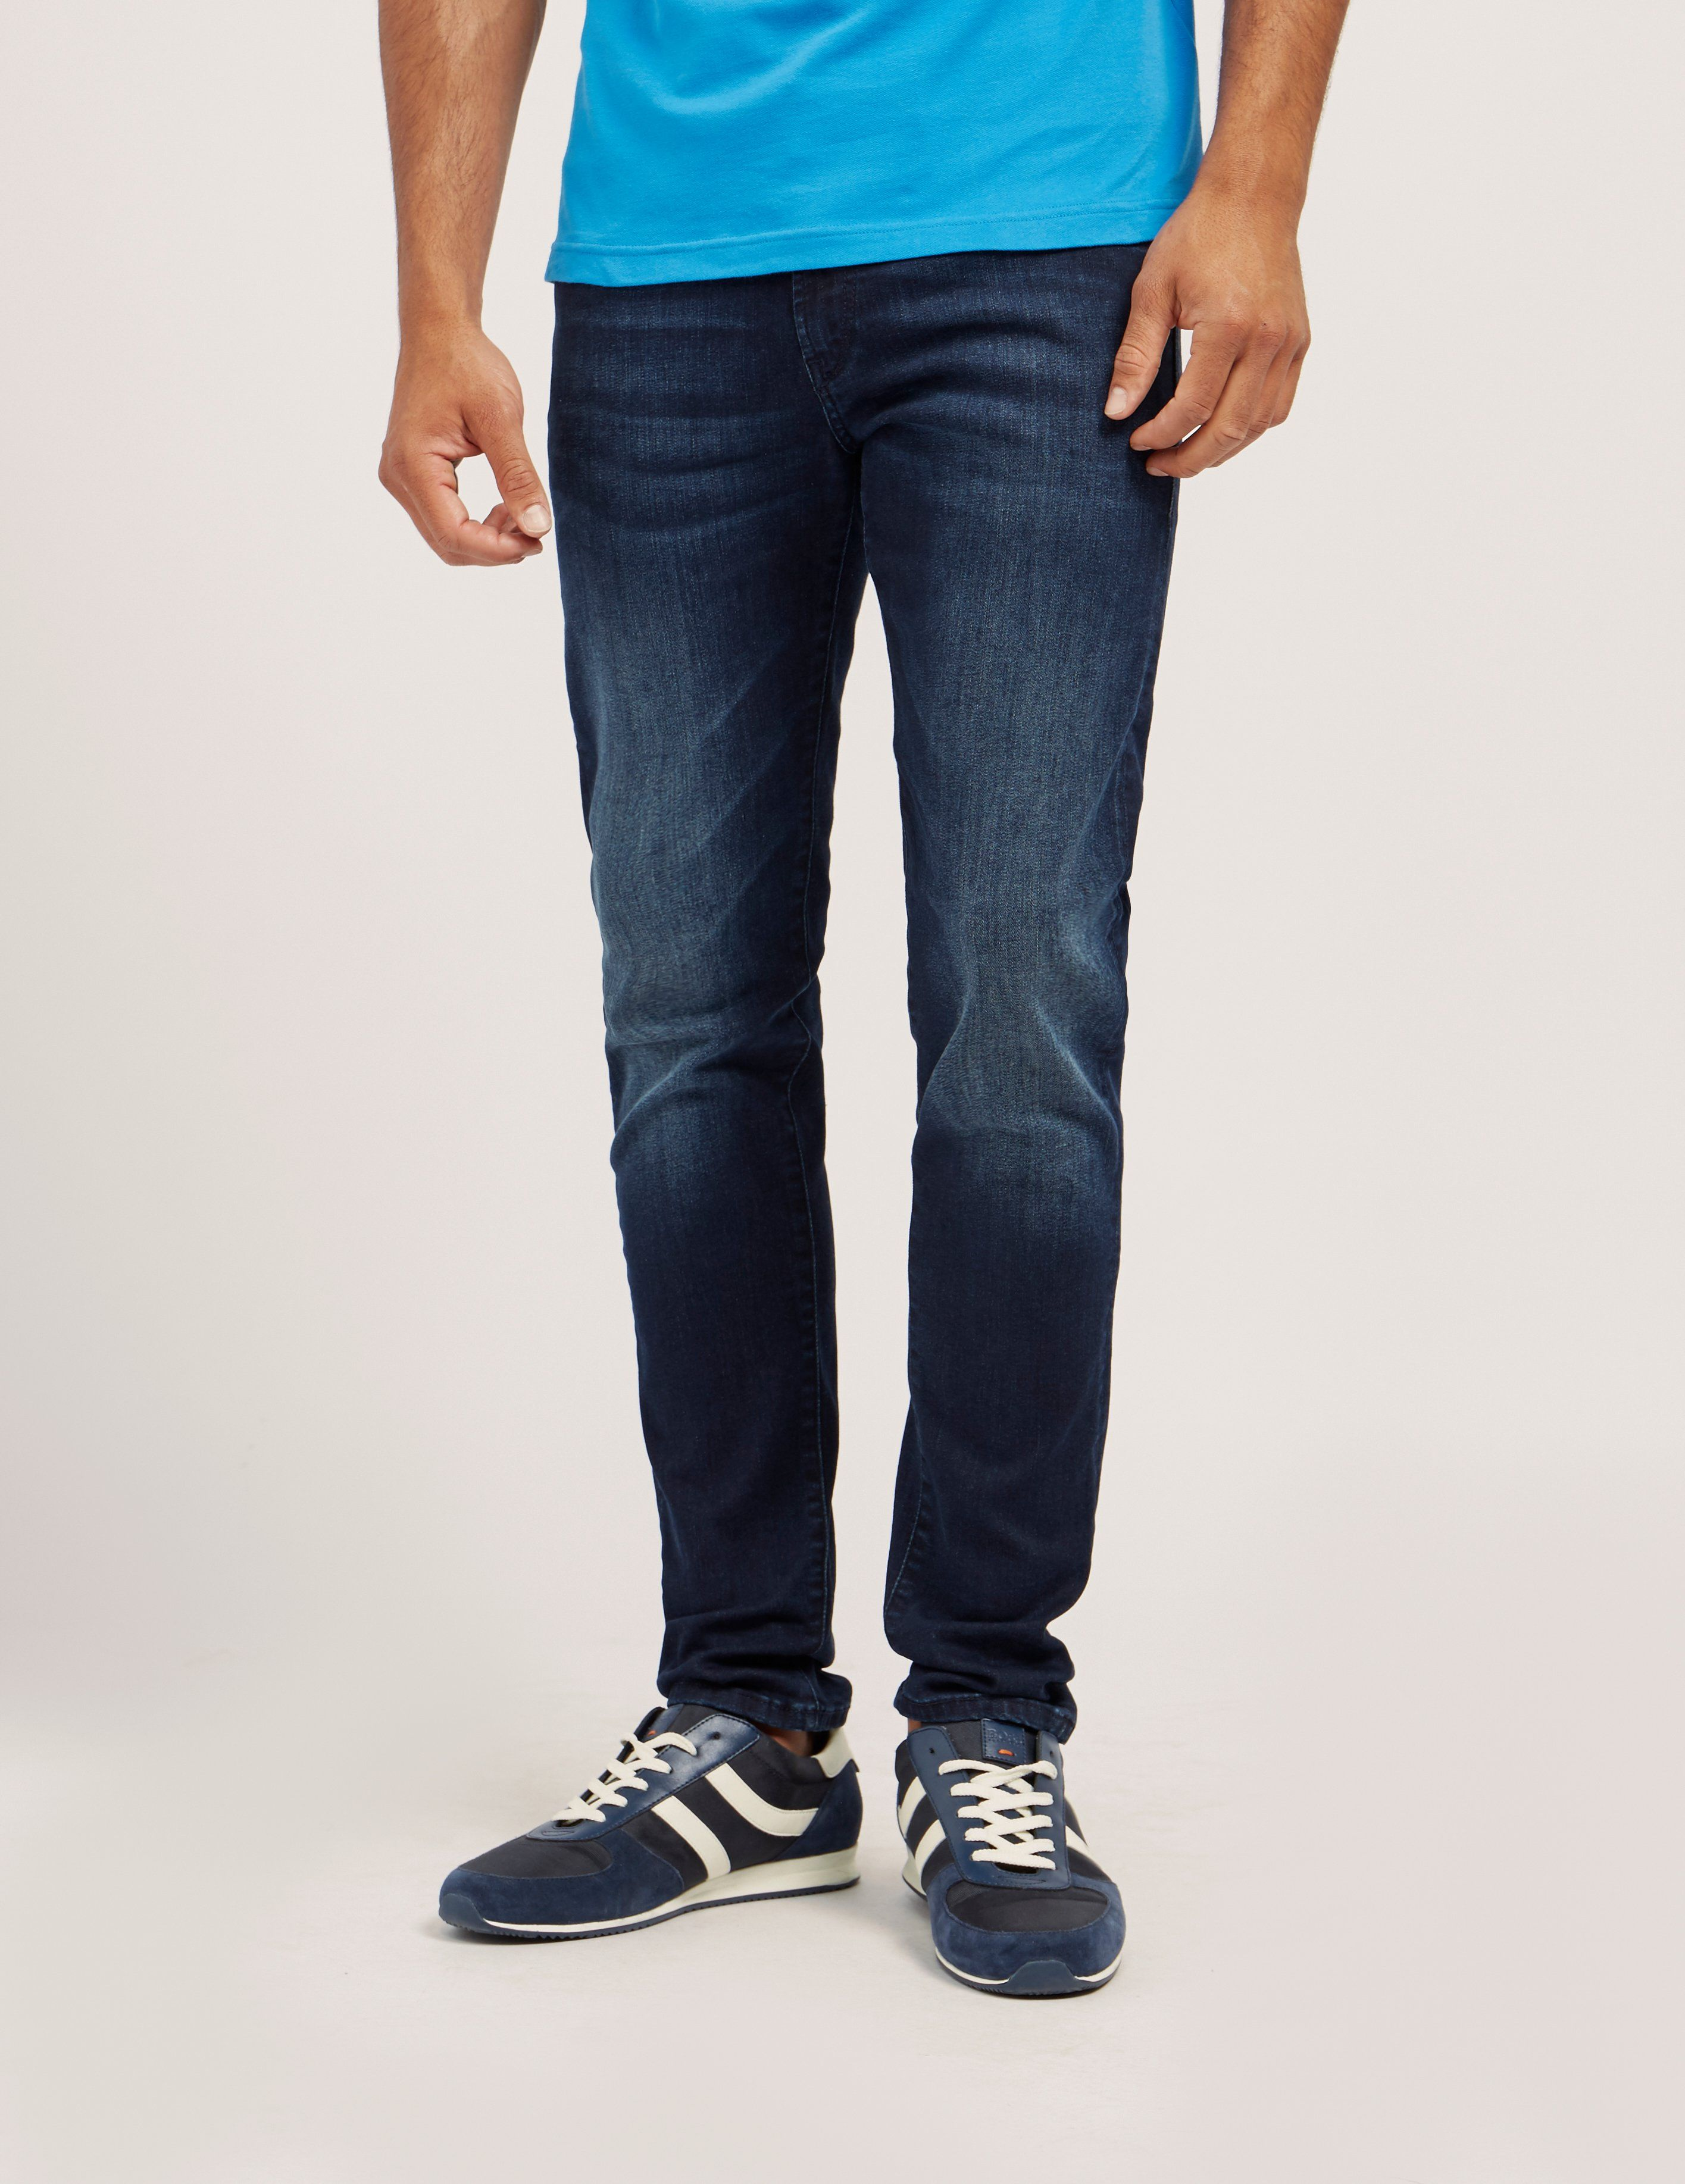 BOSS Orange 72 Skinny Stretch Jeans